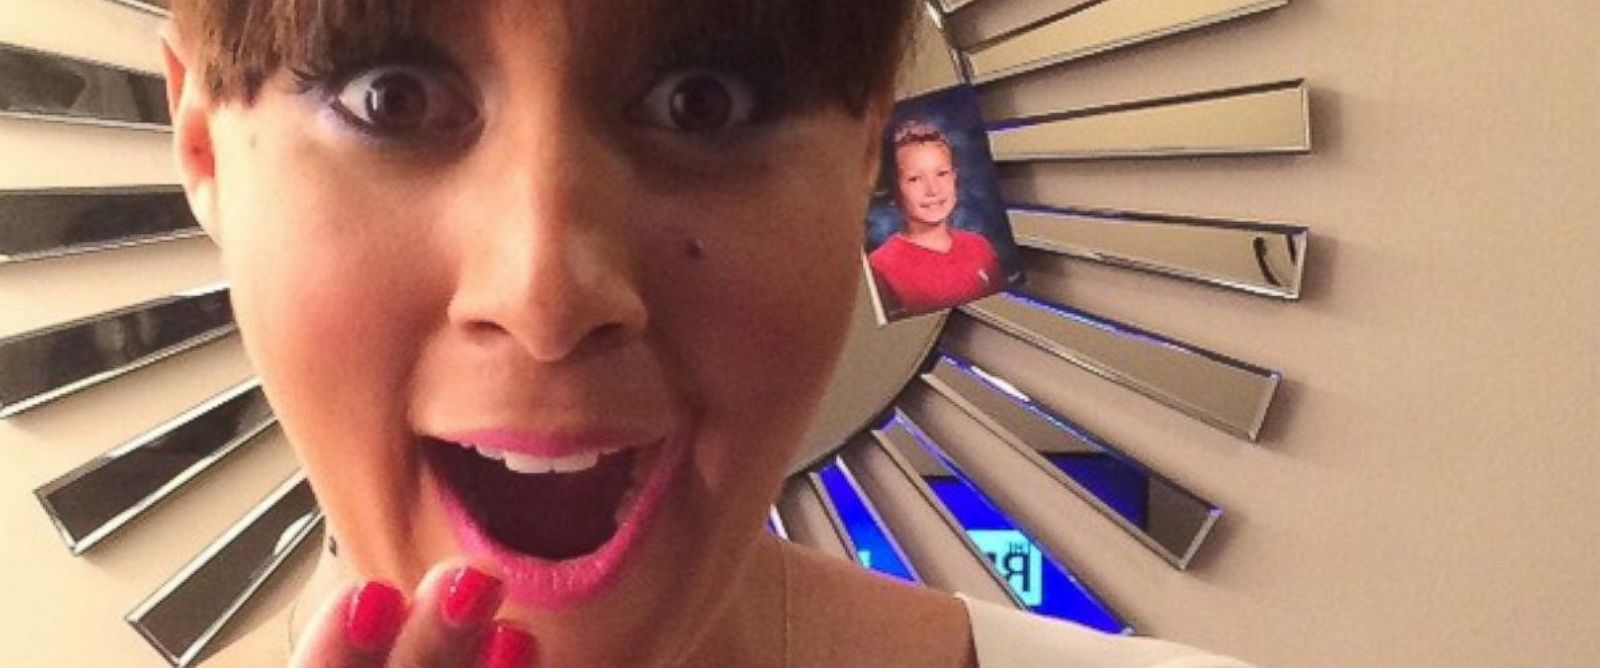 PHOTO: Tamera Mowry-Housley poses with a pregnancy test in a photo posted to Instagram, Jan. 4, 2015.